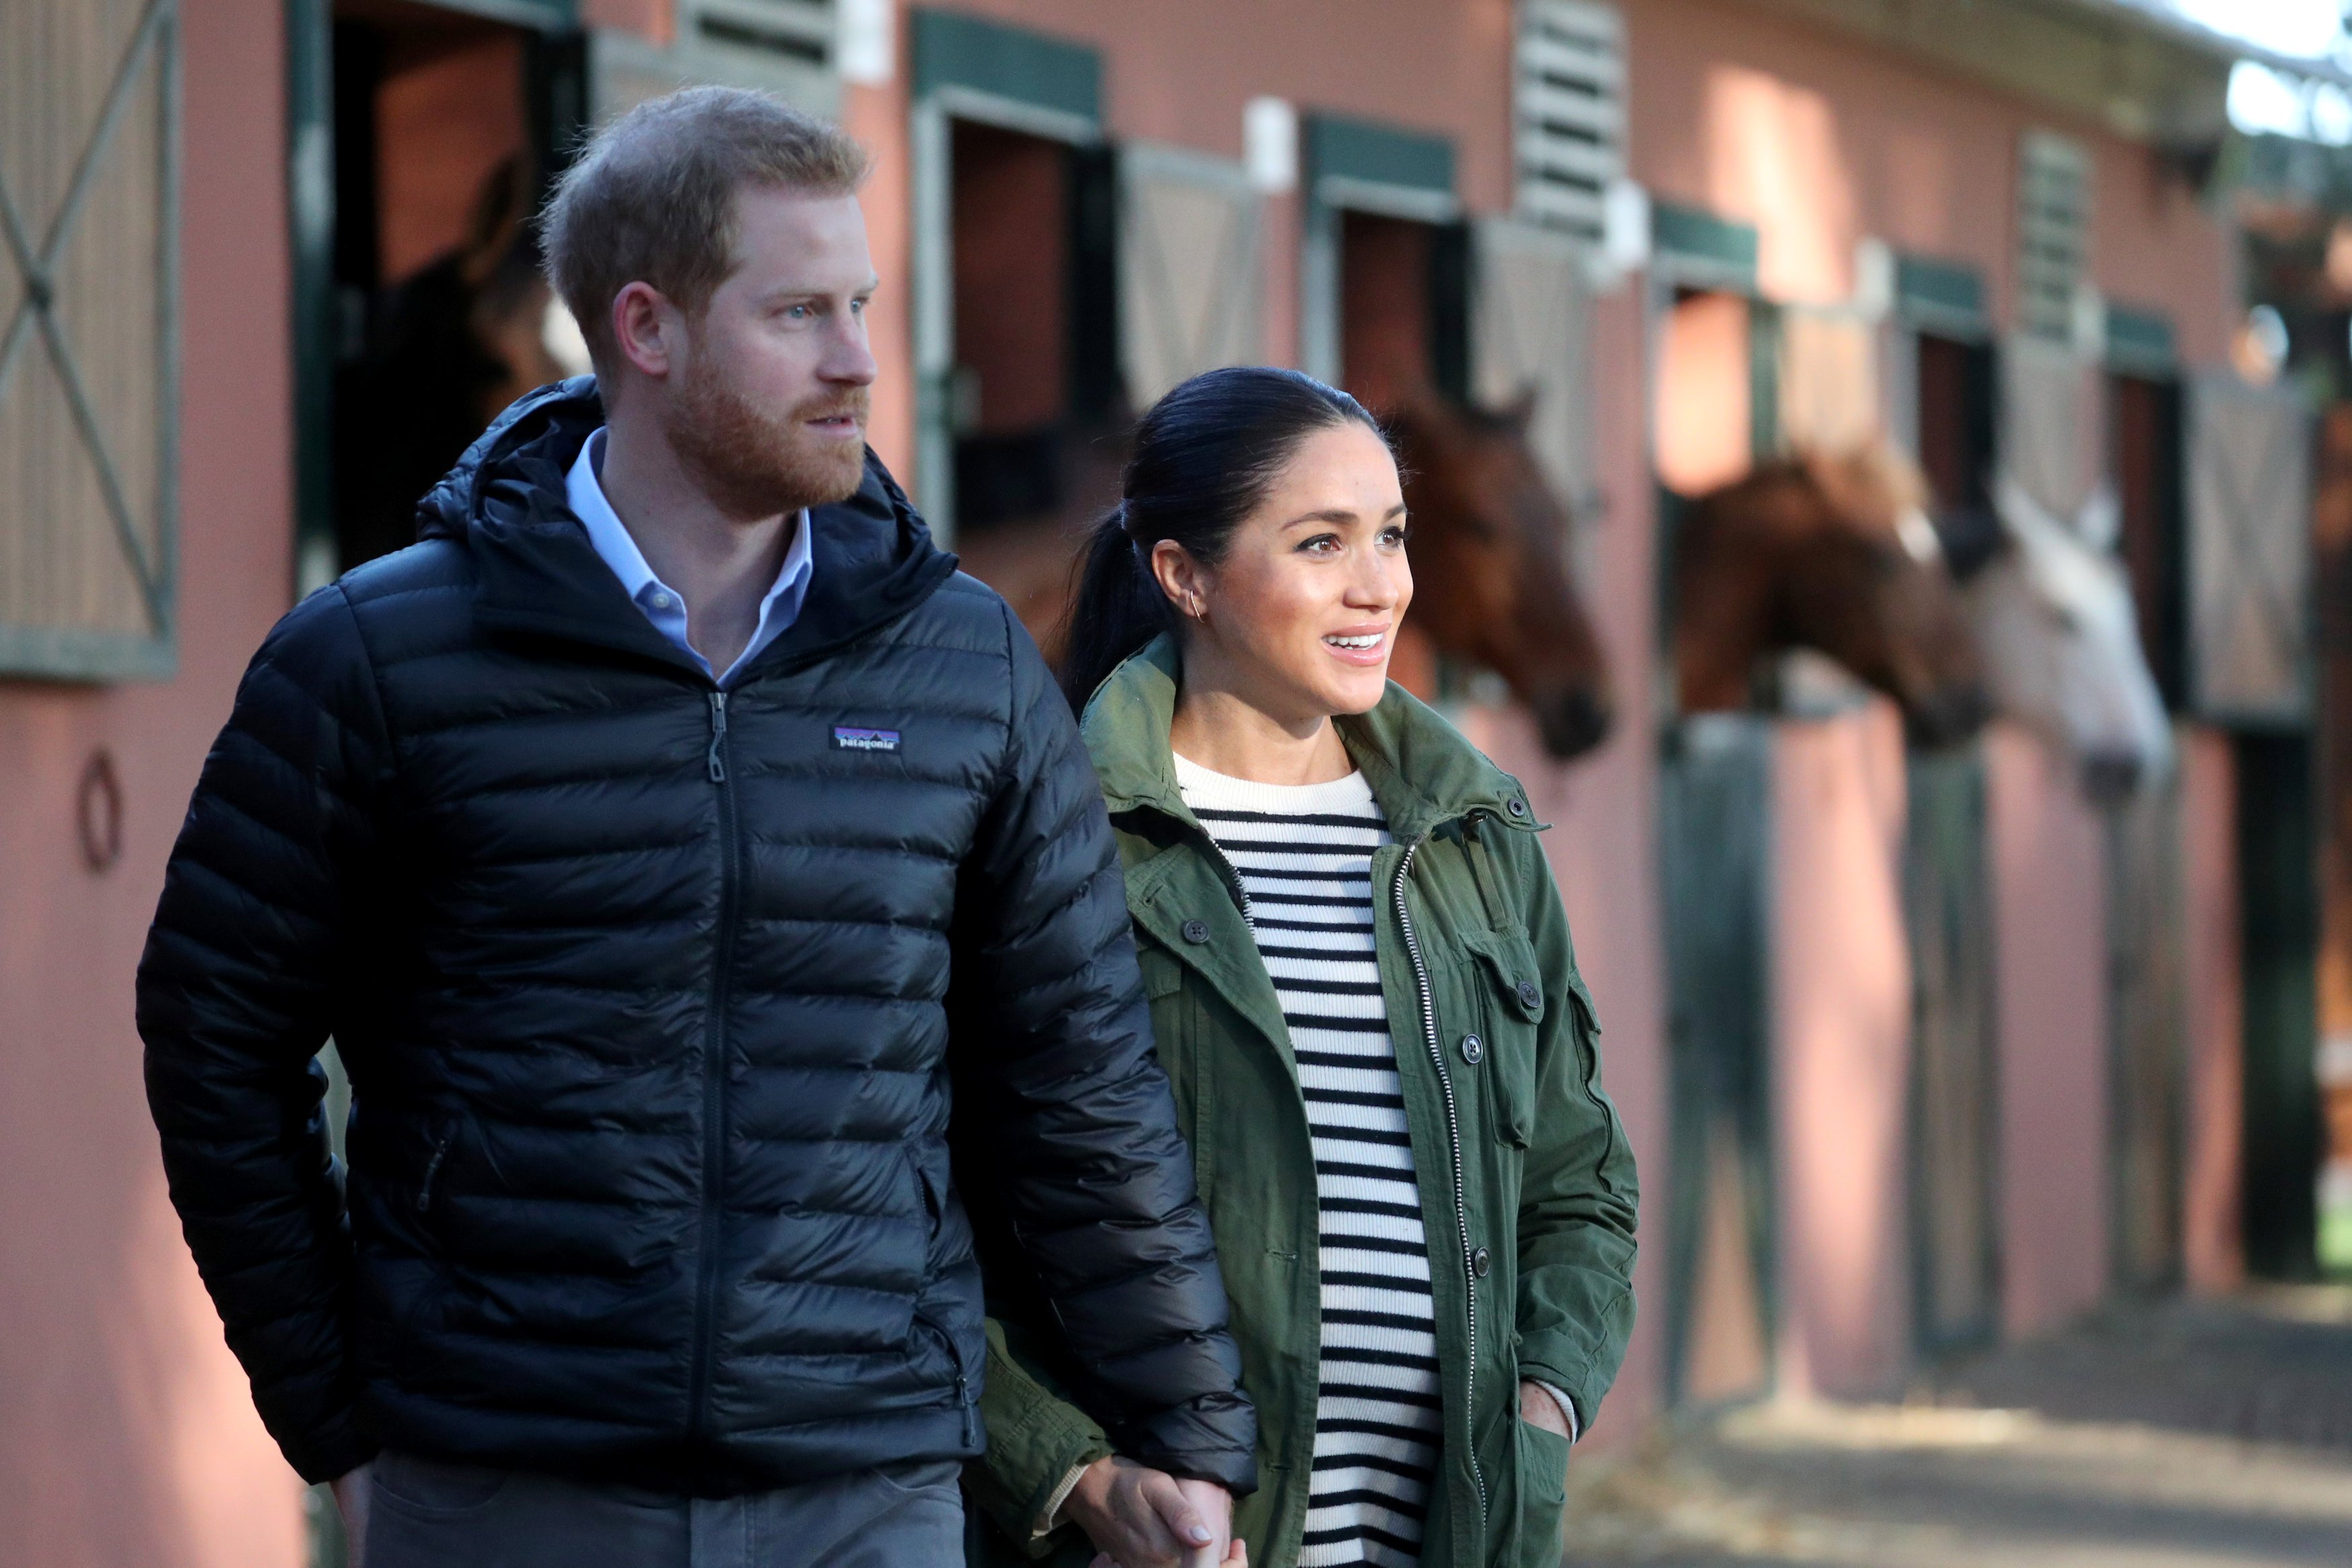 Prince Harry and Meghan Markle on a visit to Morocco in February 2019. | Source: Getty Images